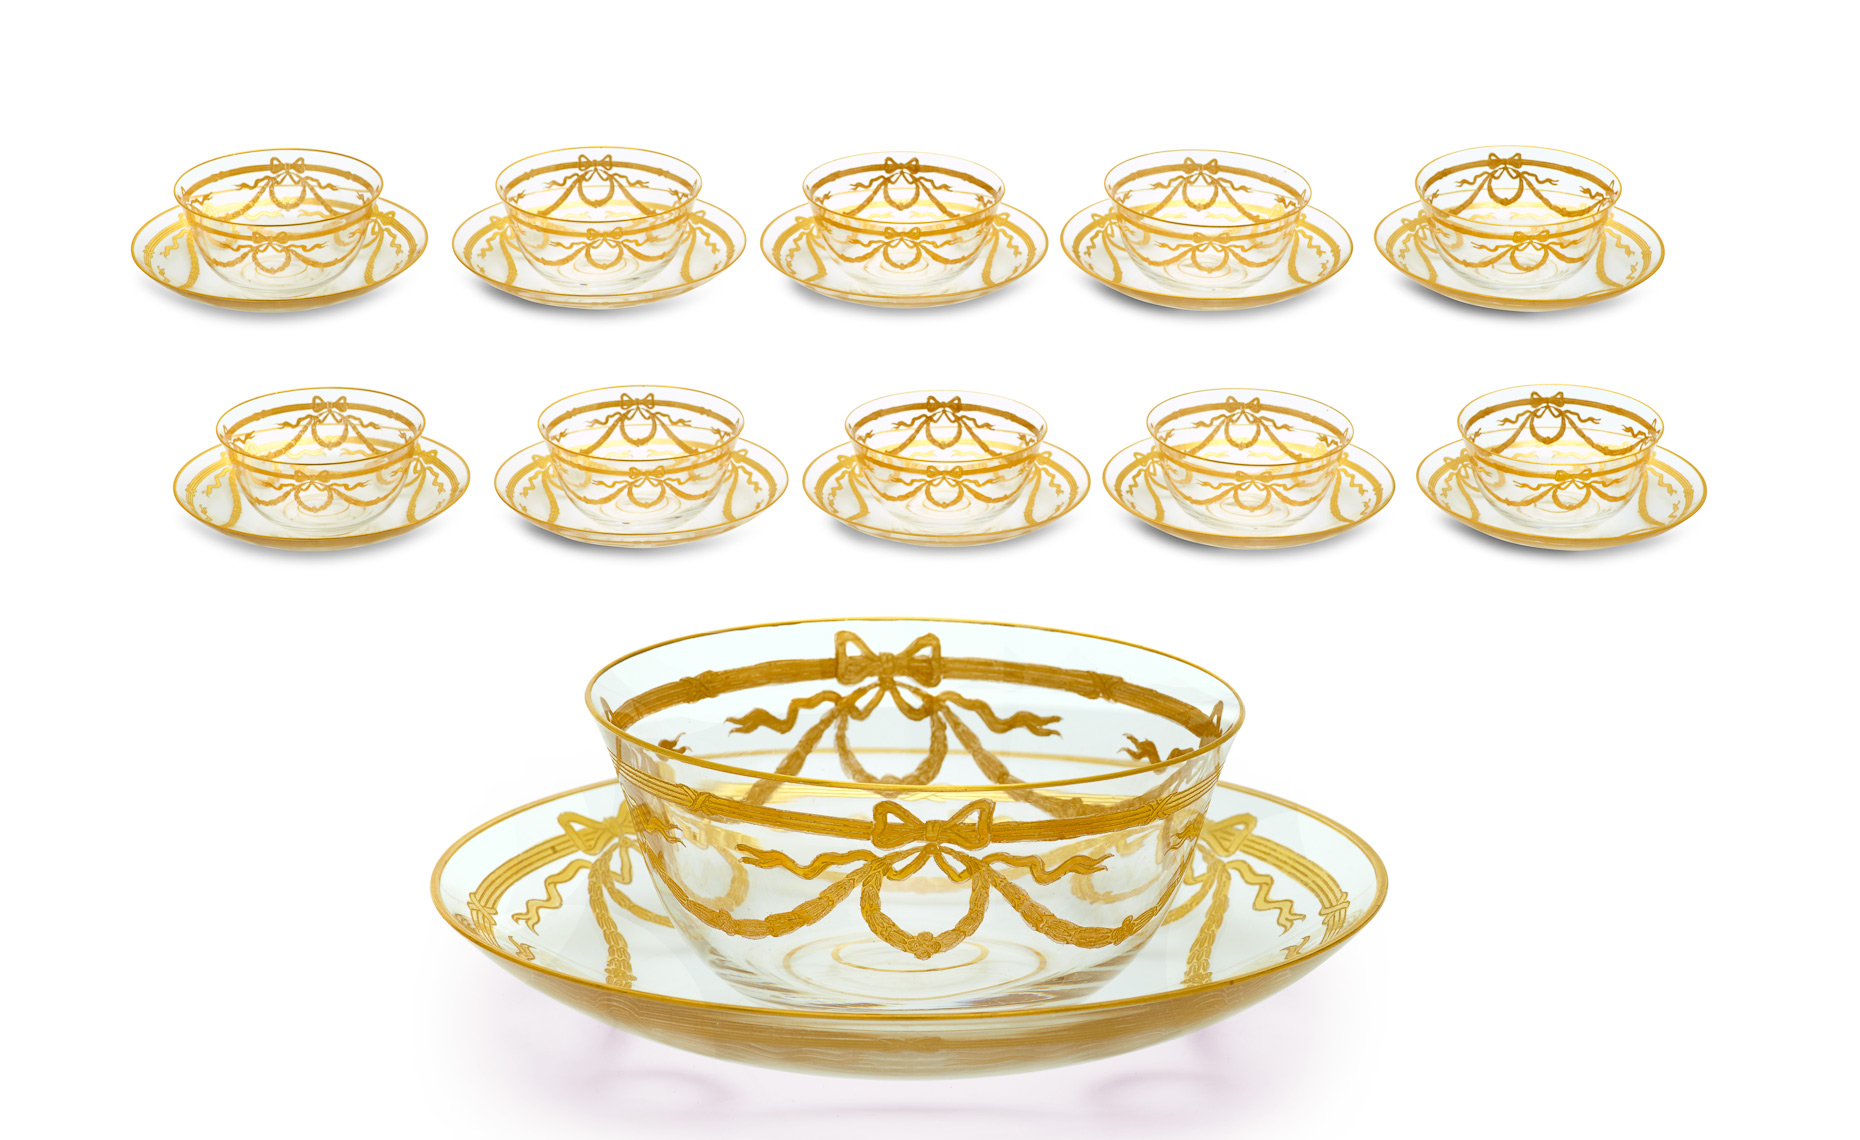 Ashby_FRench_etched_glass_bowls_7958_10478_comp